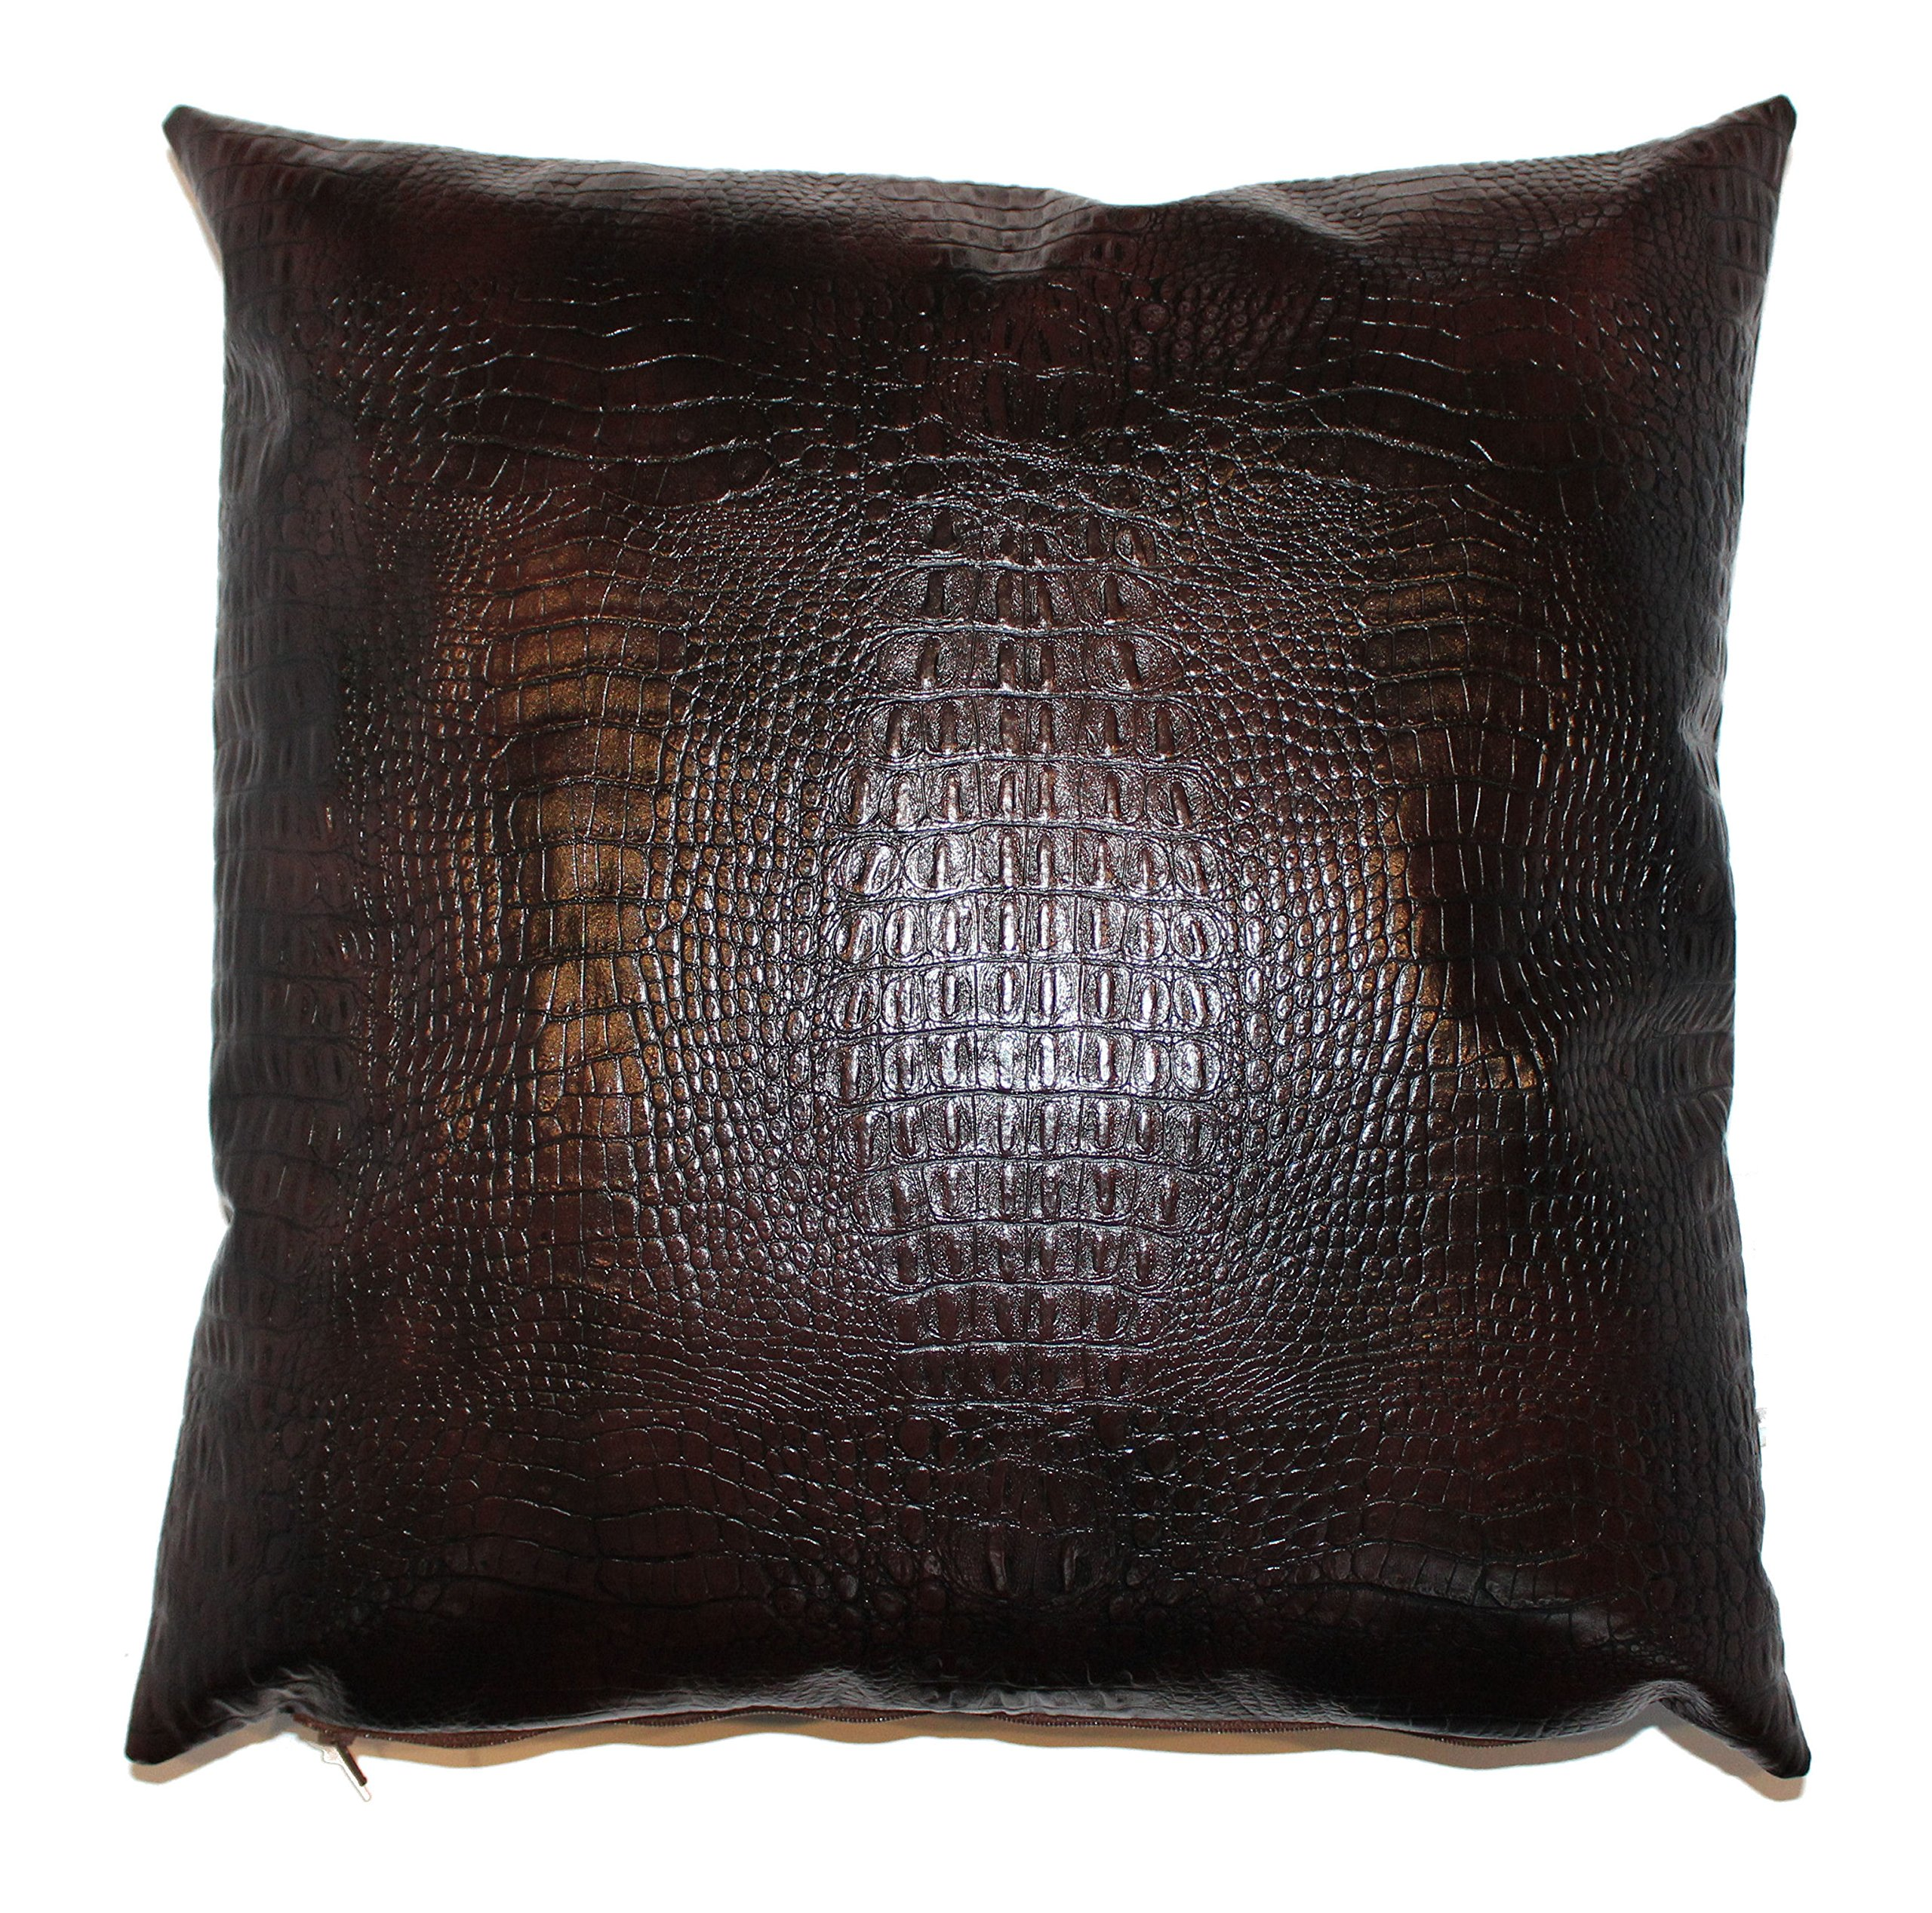 Alligator Faux Leather Throw Pillow Cover Wood 18x18 in 1pc